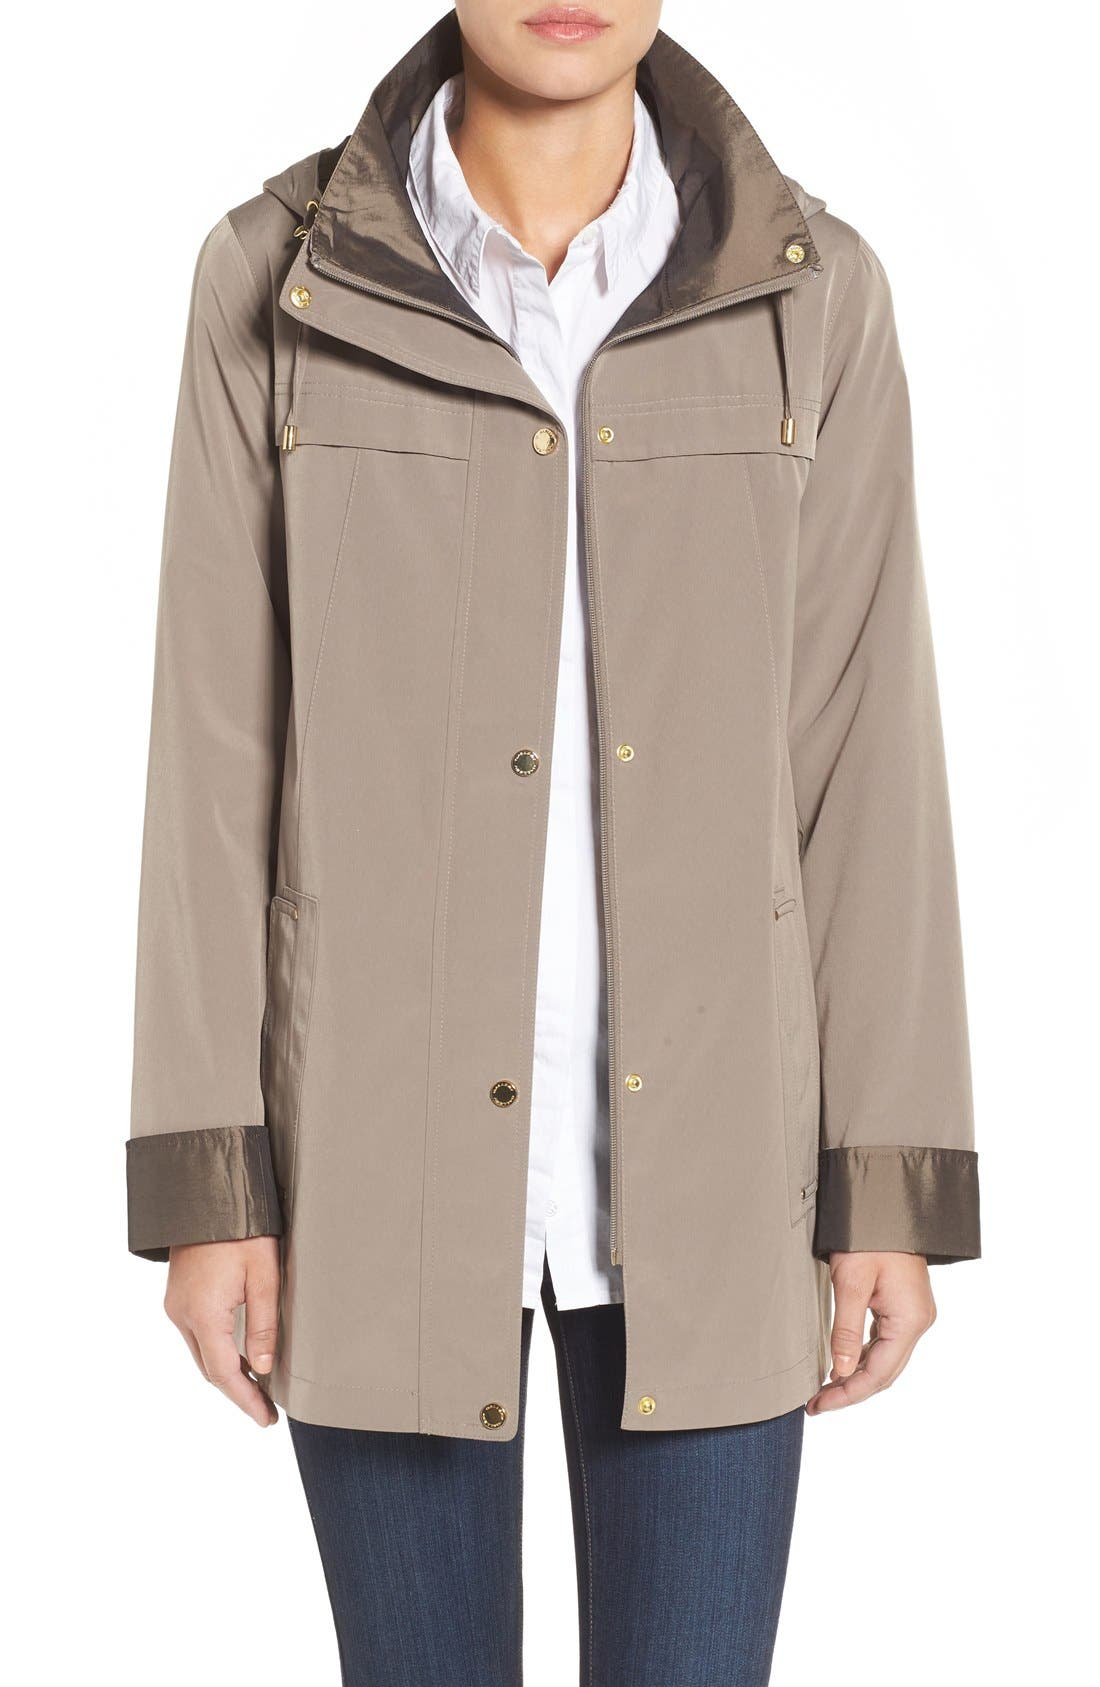 GALLERY Silk Look Hooded Raincoat